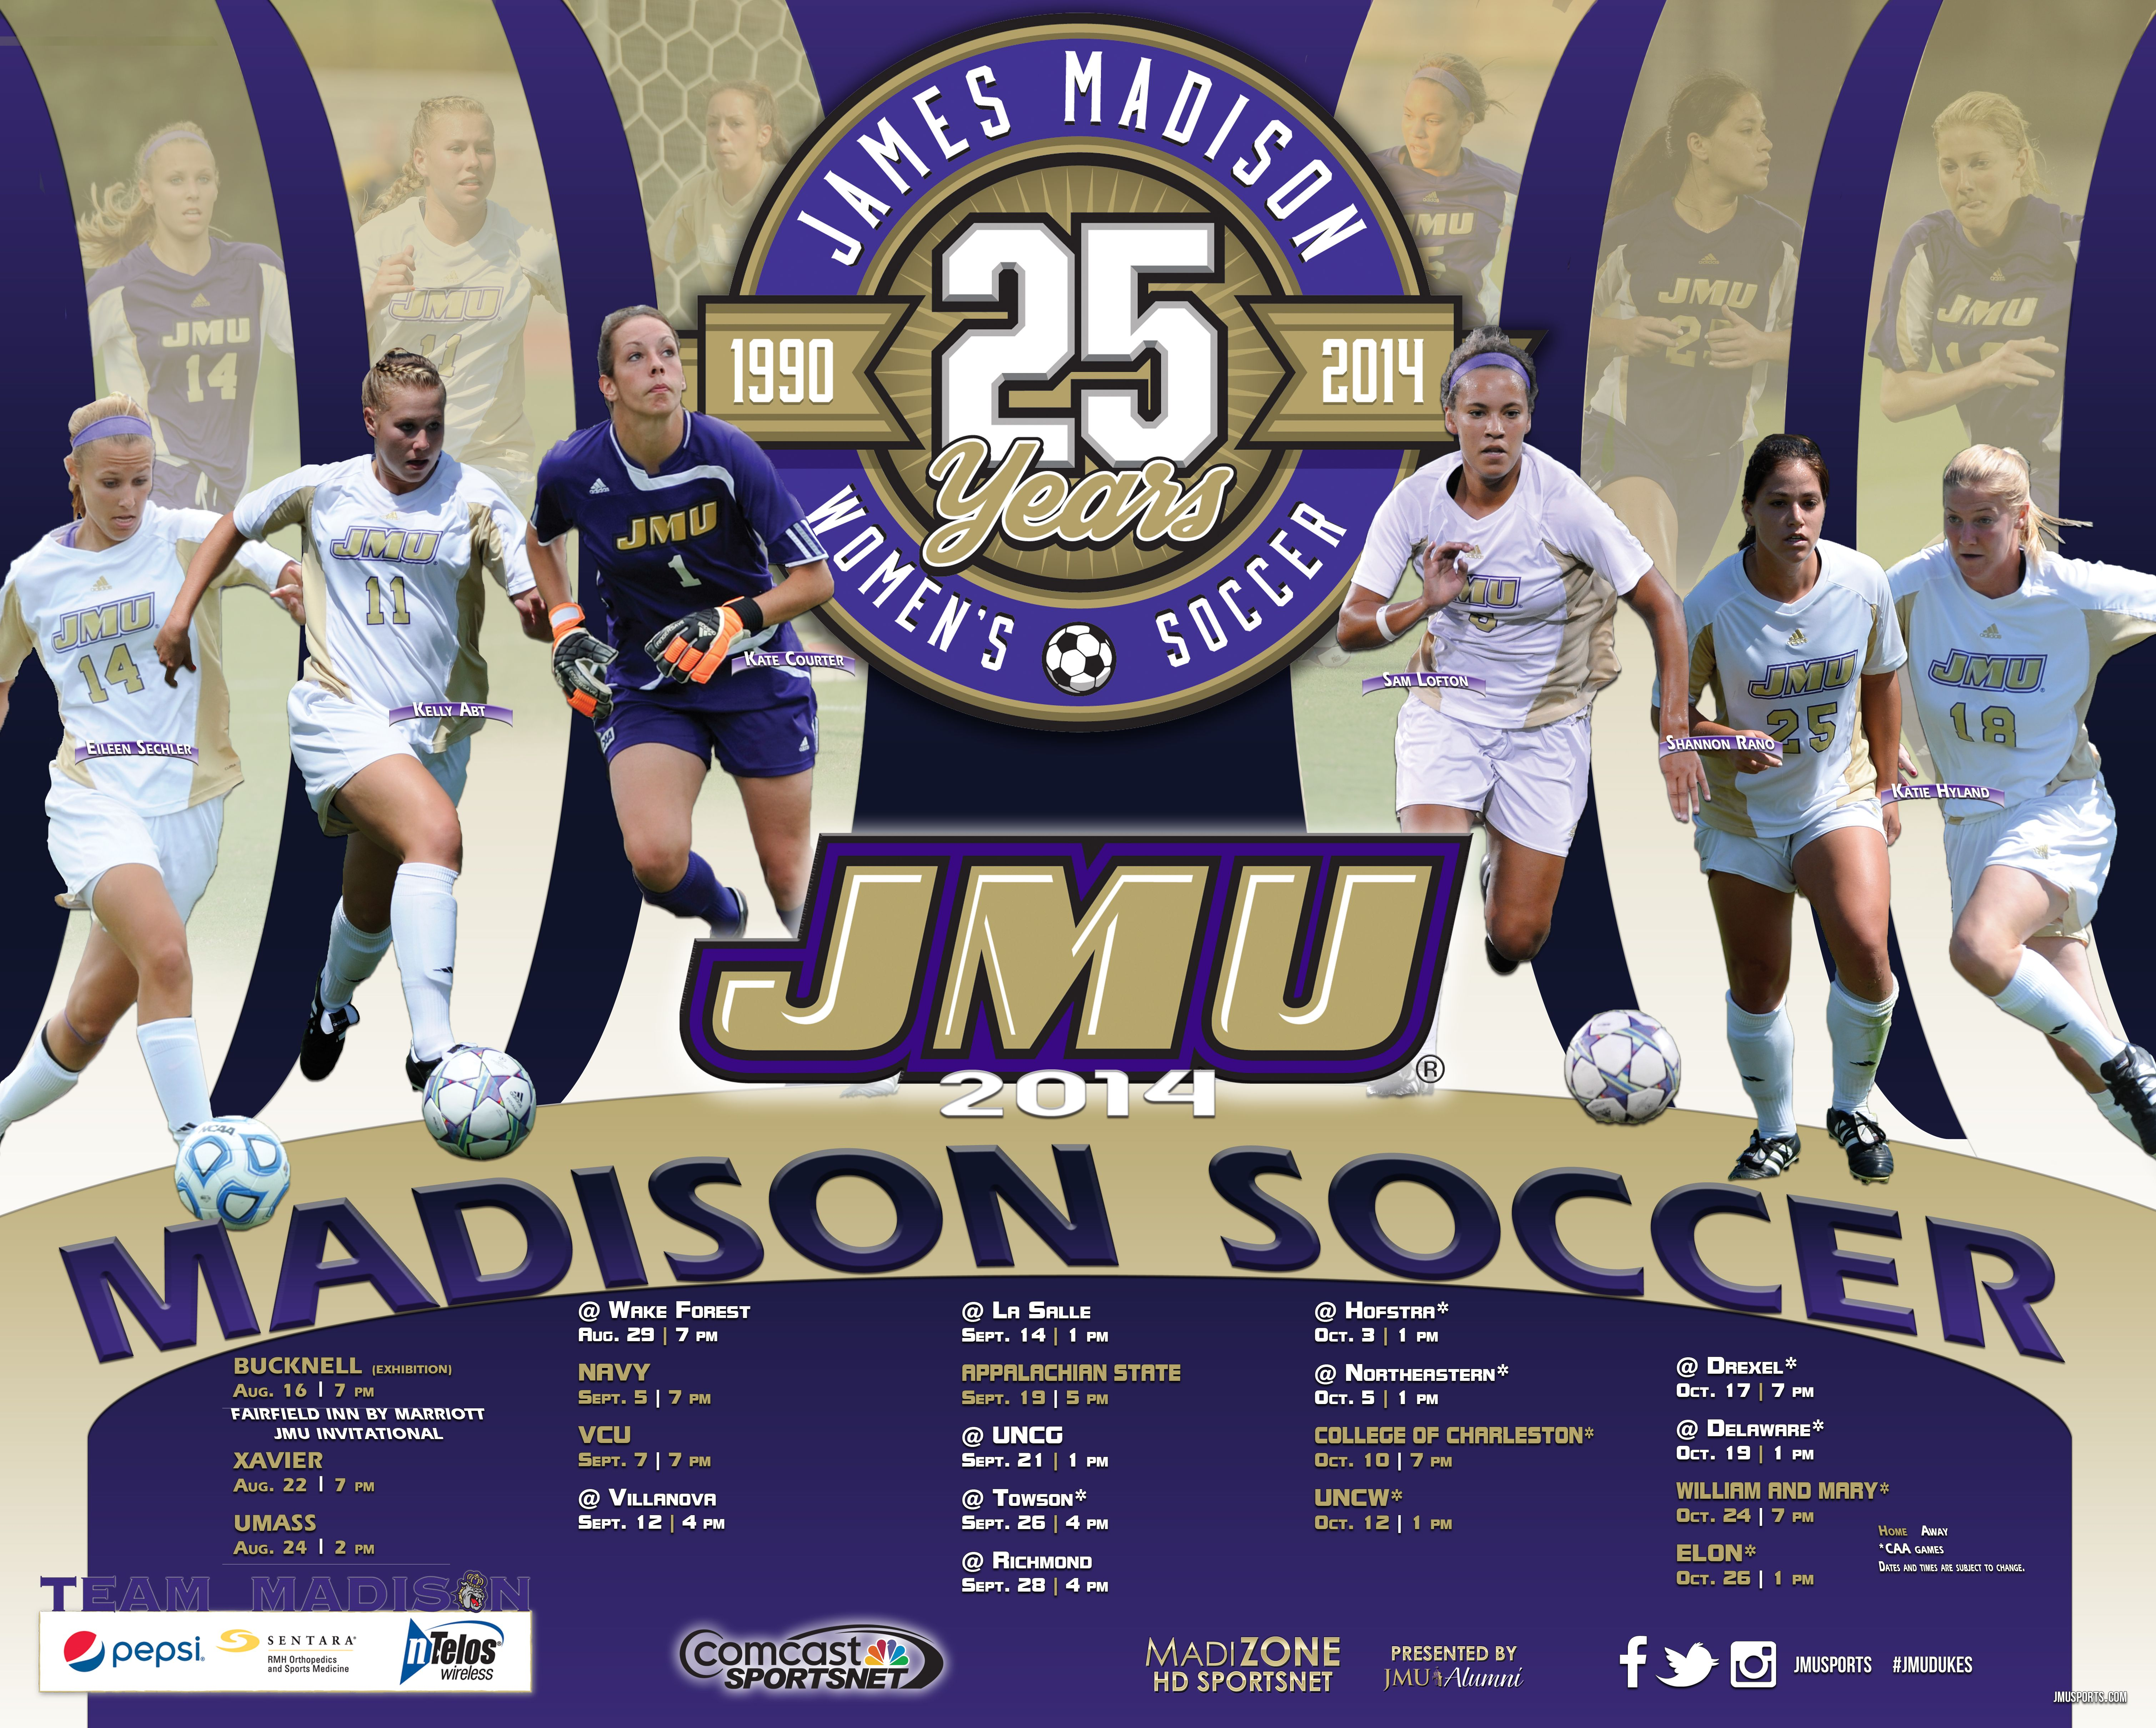 2014 Jmu Women S Soccer Schedule Poster Click To Download The Full Version W Soccer Soccer Schedule Soccer Places To Visit